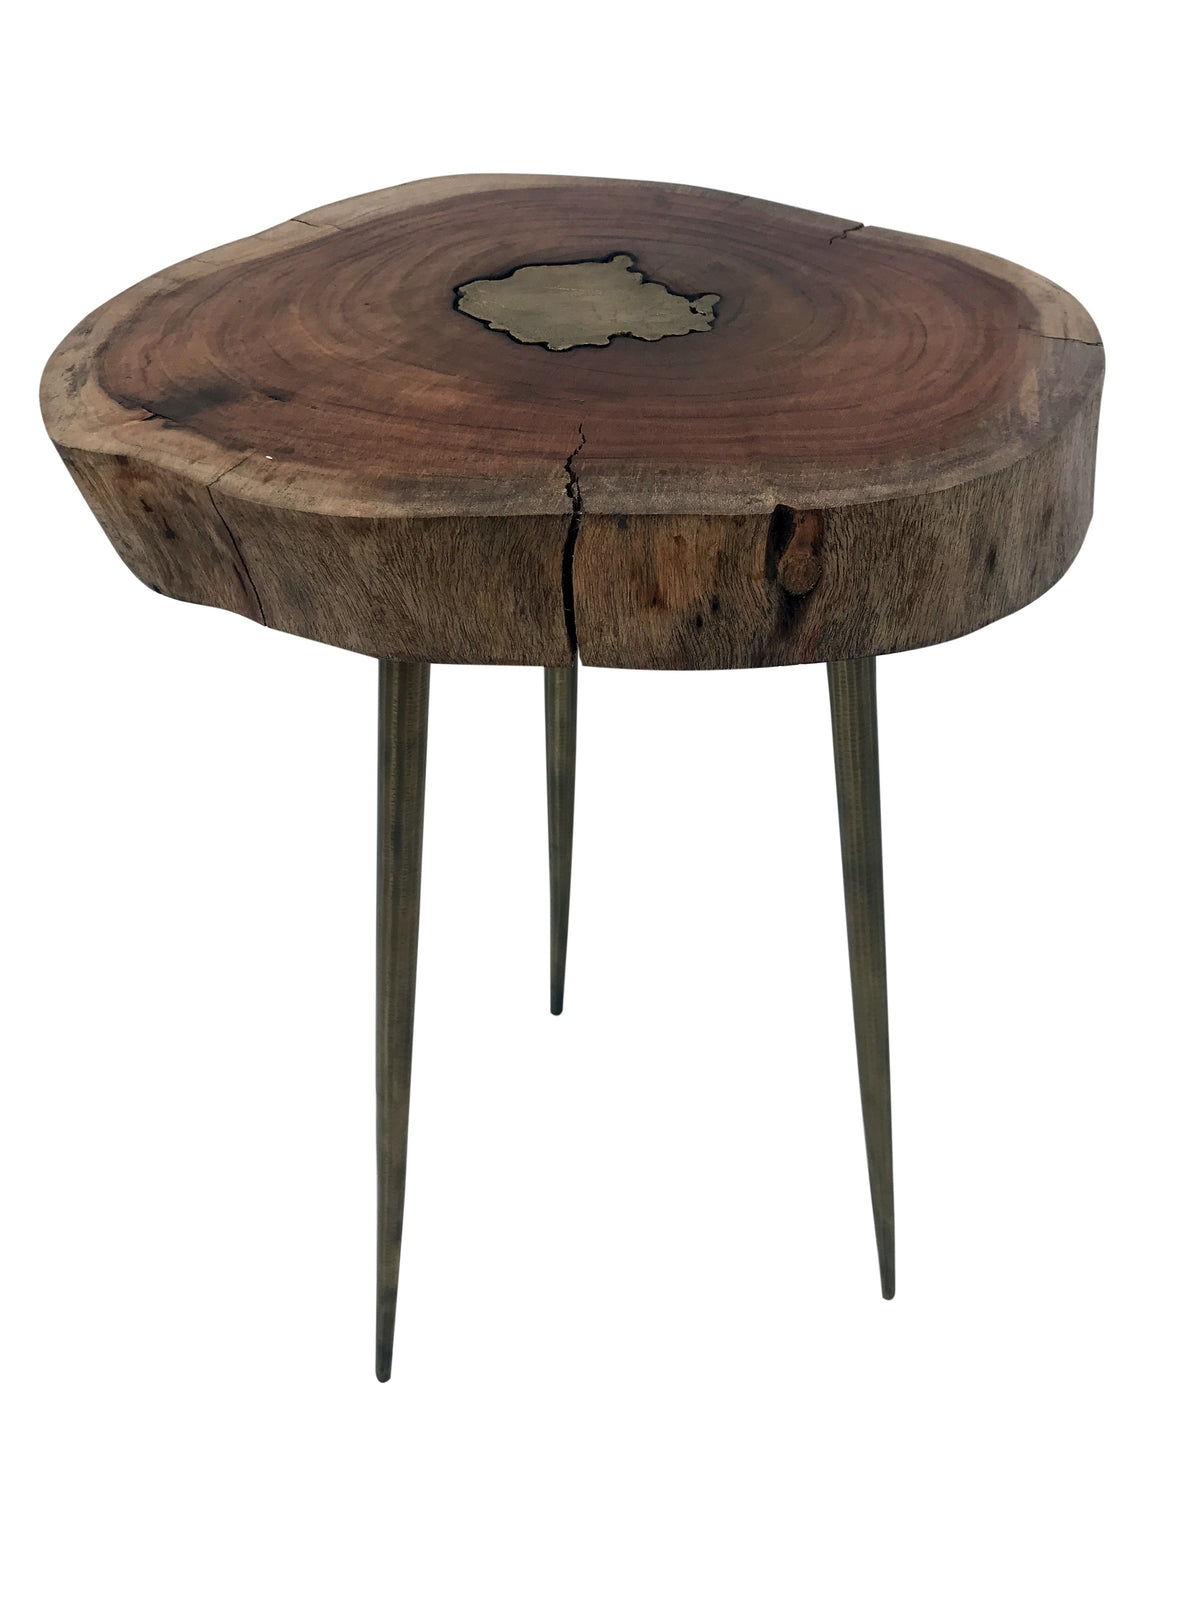 Artistic Side Table 100% Natural Wooden Top With Brass Infil And 3 Legs